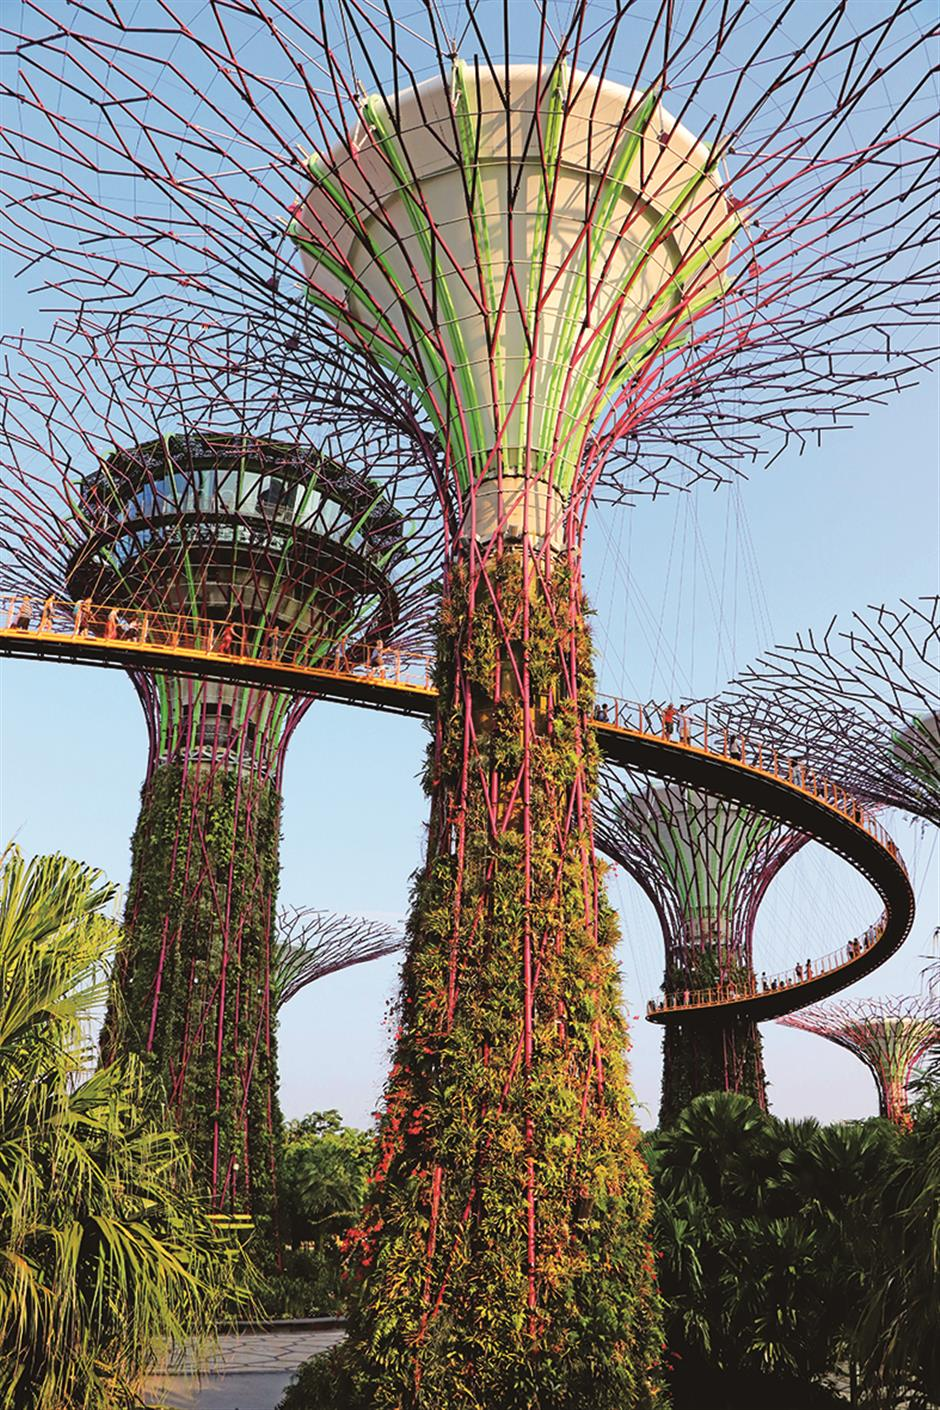 The 10 top things you must do in Singapore